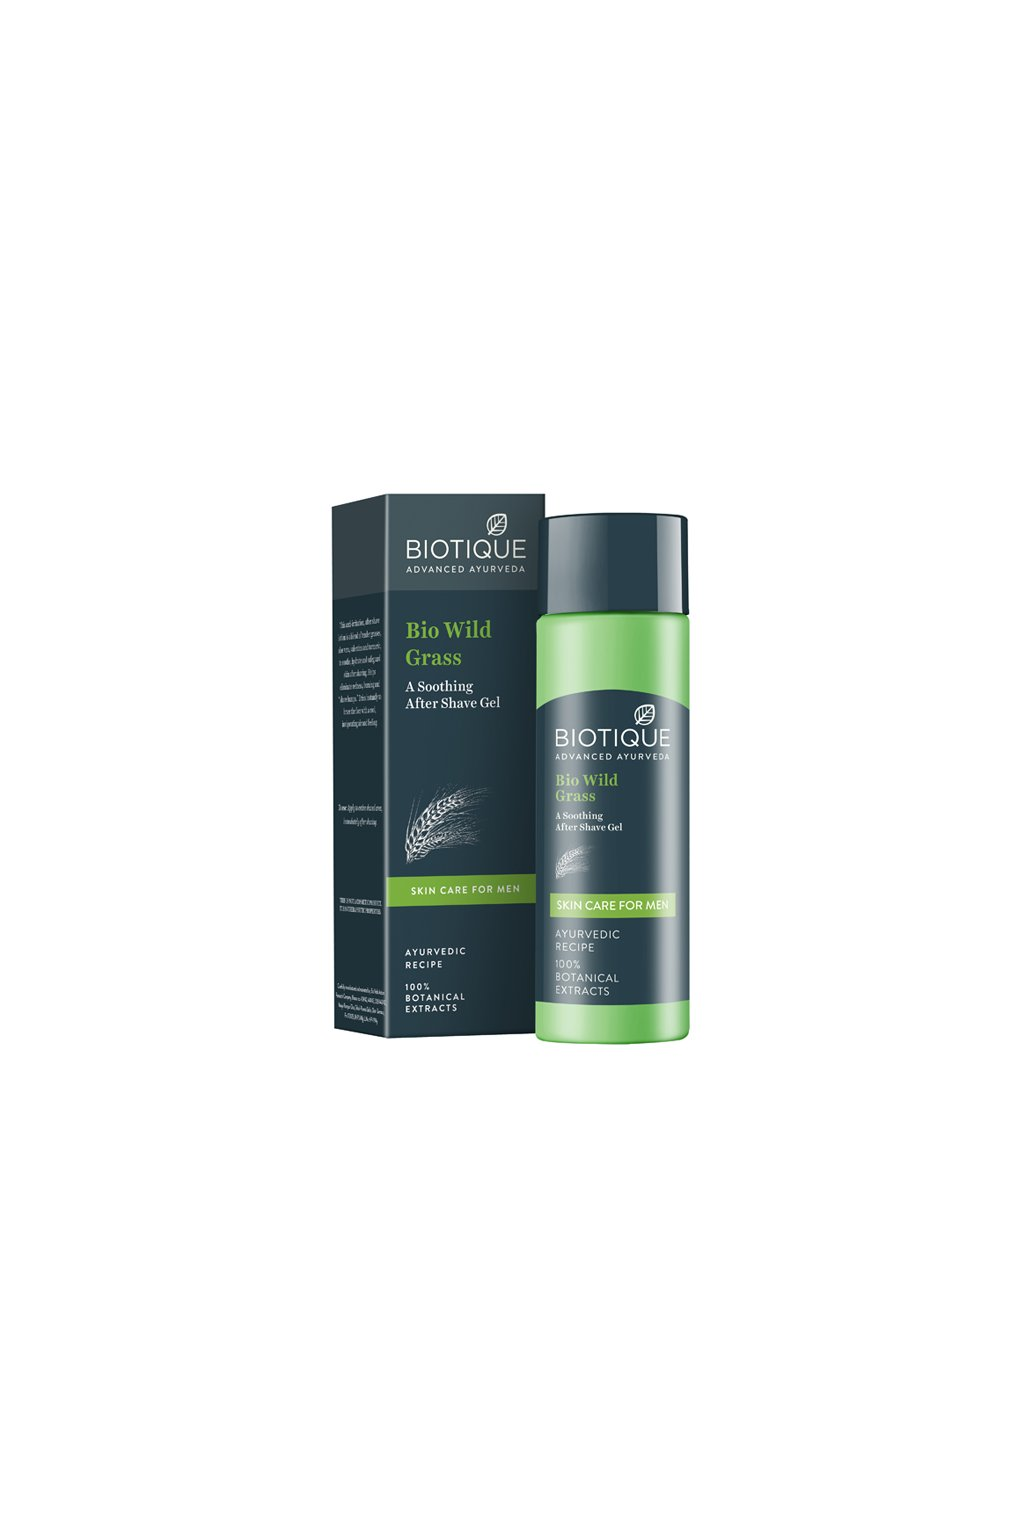 Bio wild grass skin care for men 1